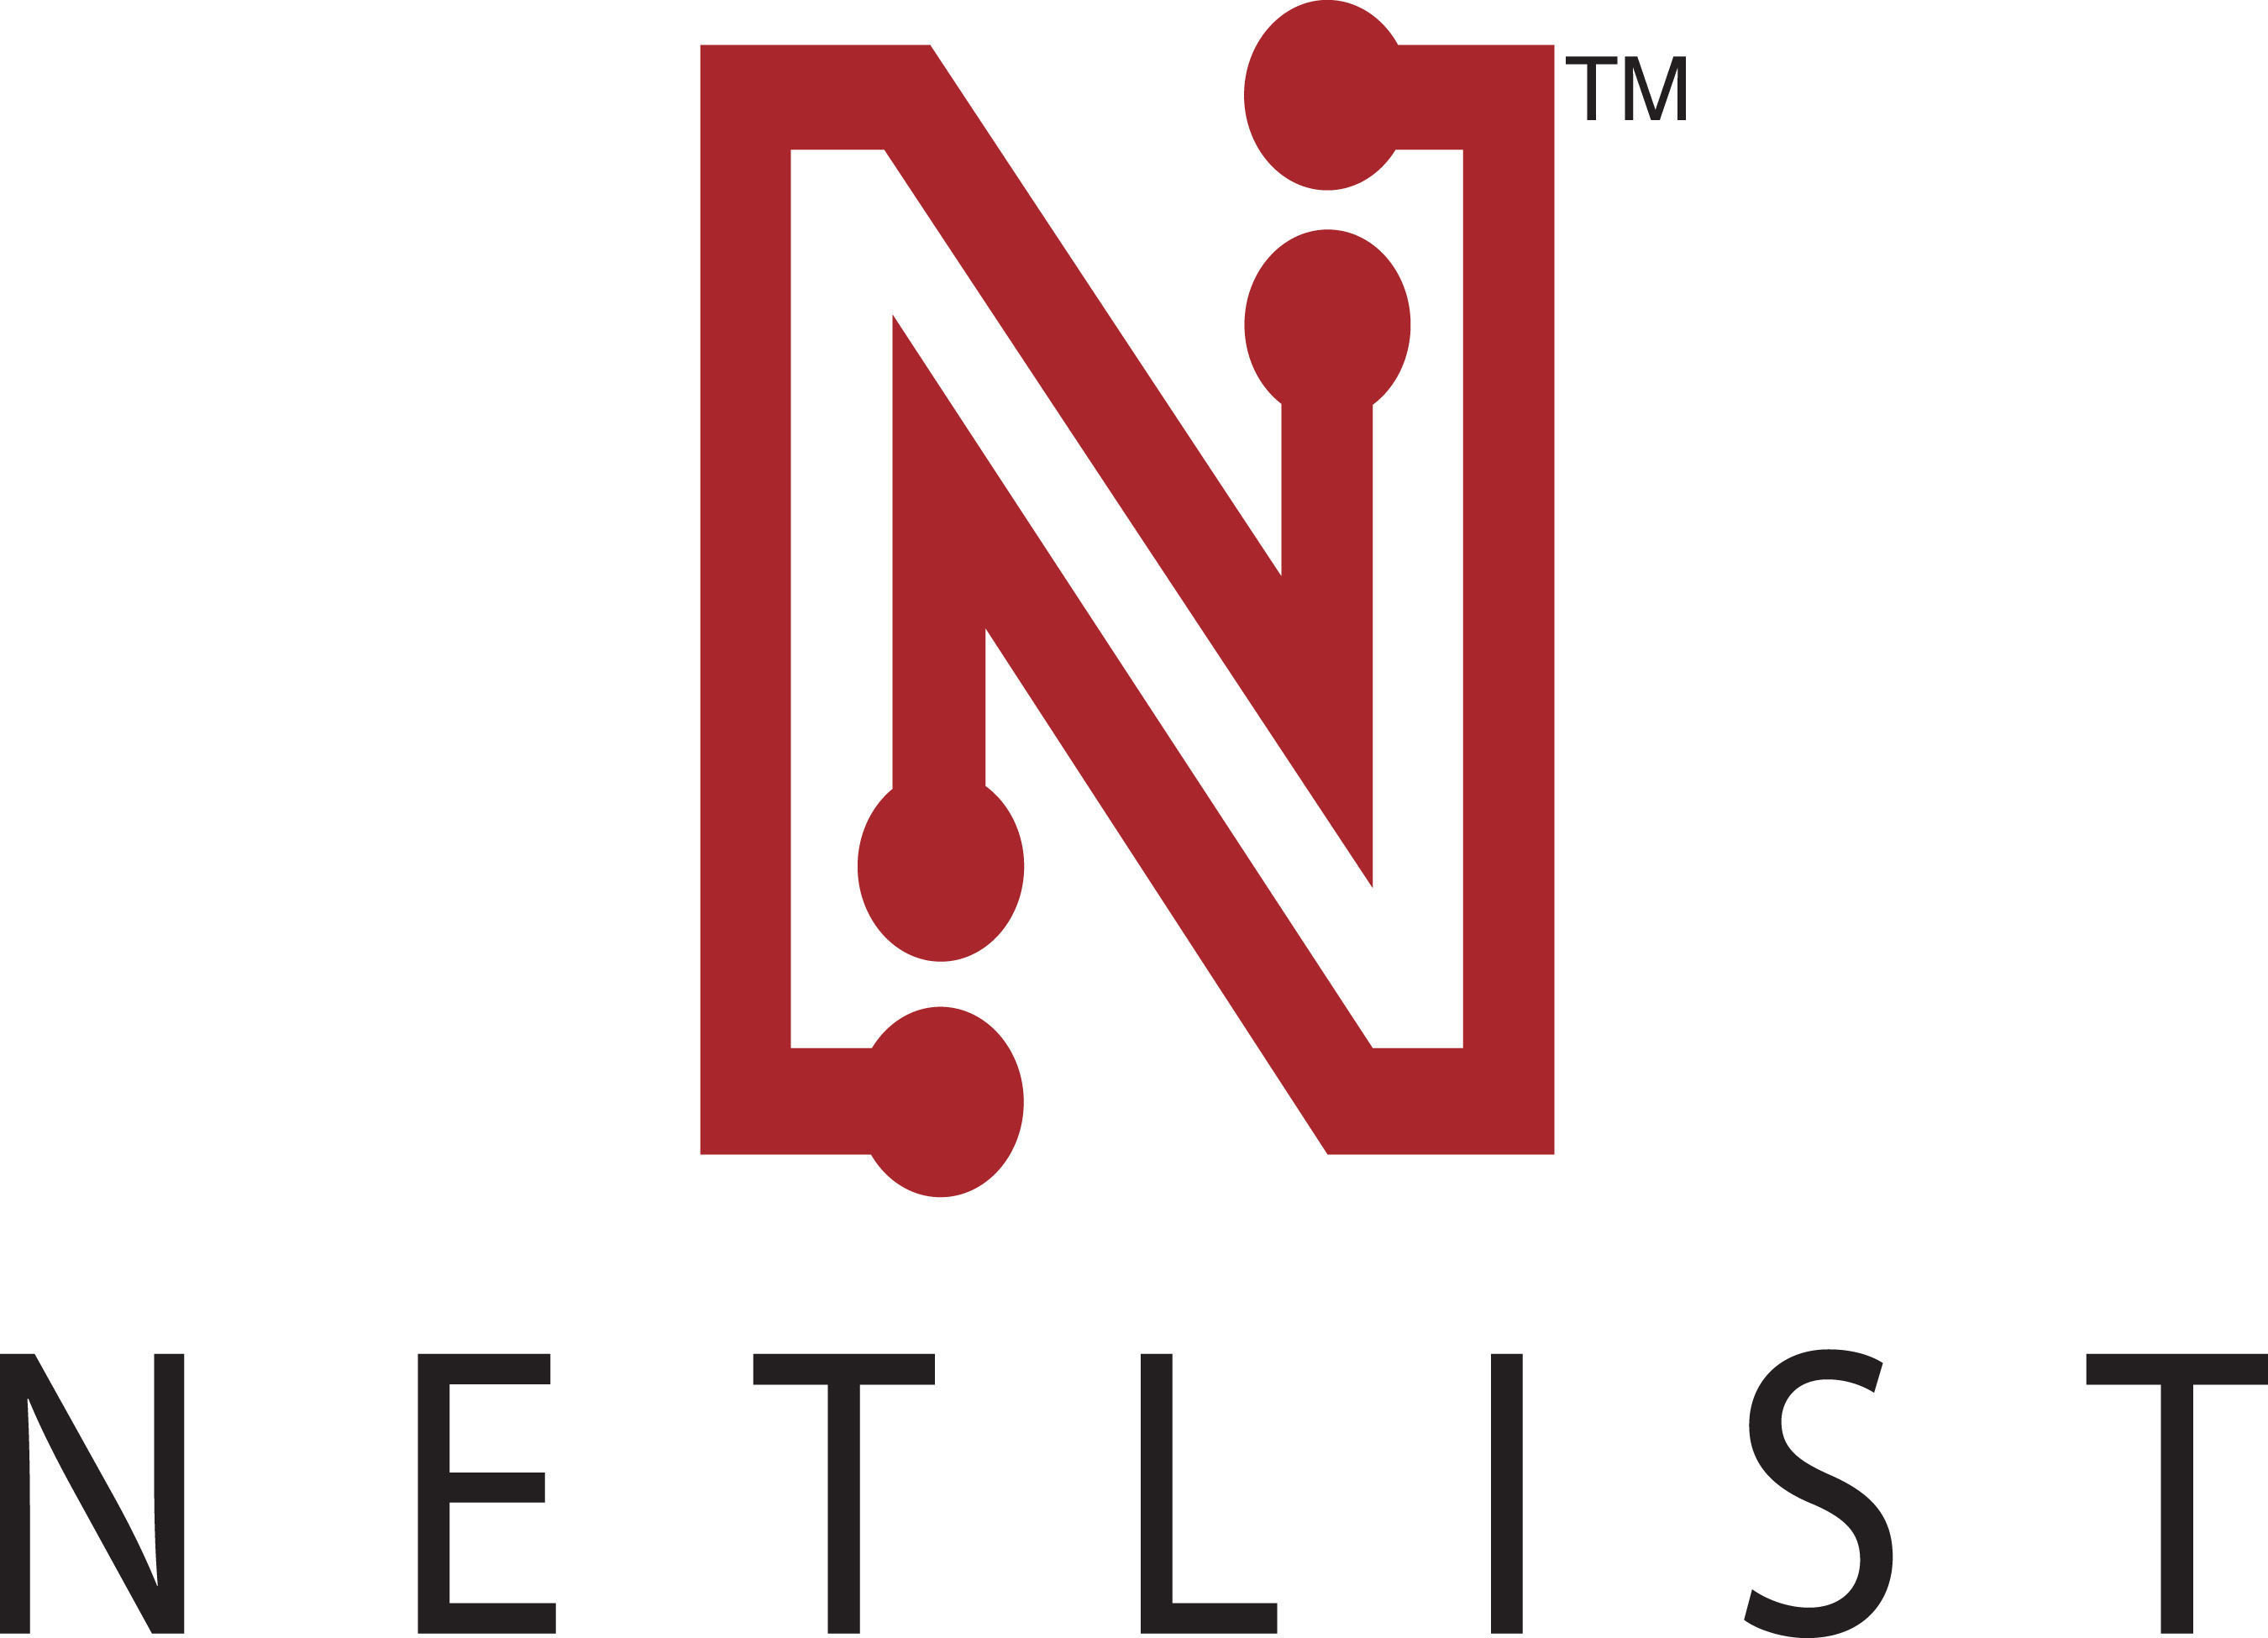 Netlist And LG Electronics To Actively Cooperate On Development Of HyperVault Mobile Memory Controller